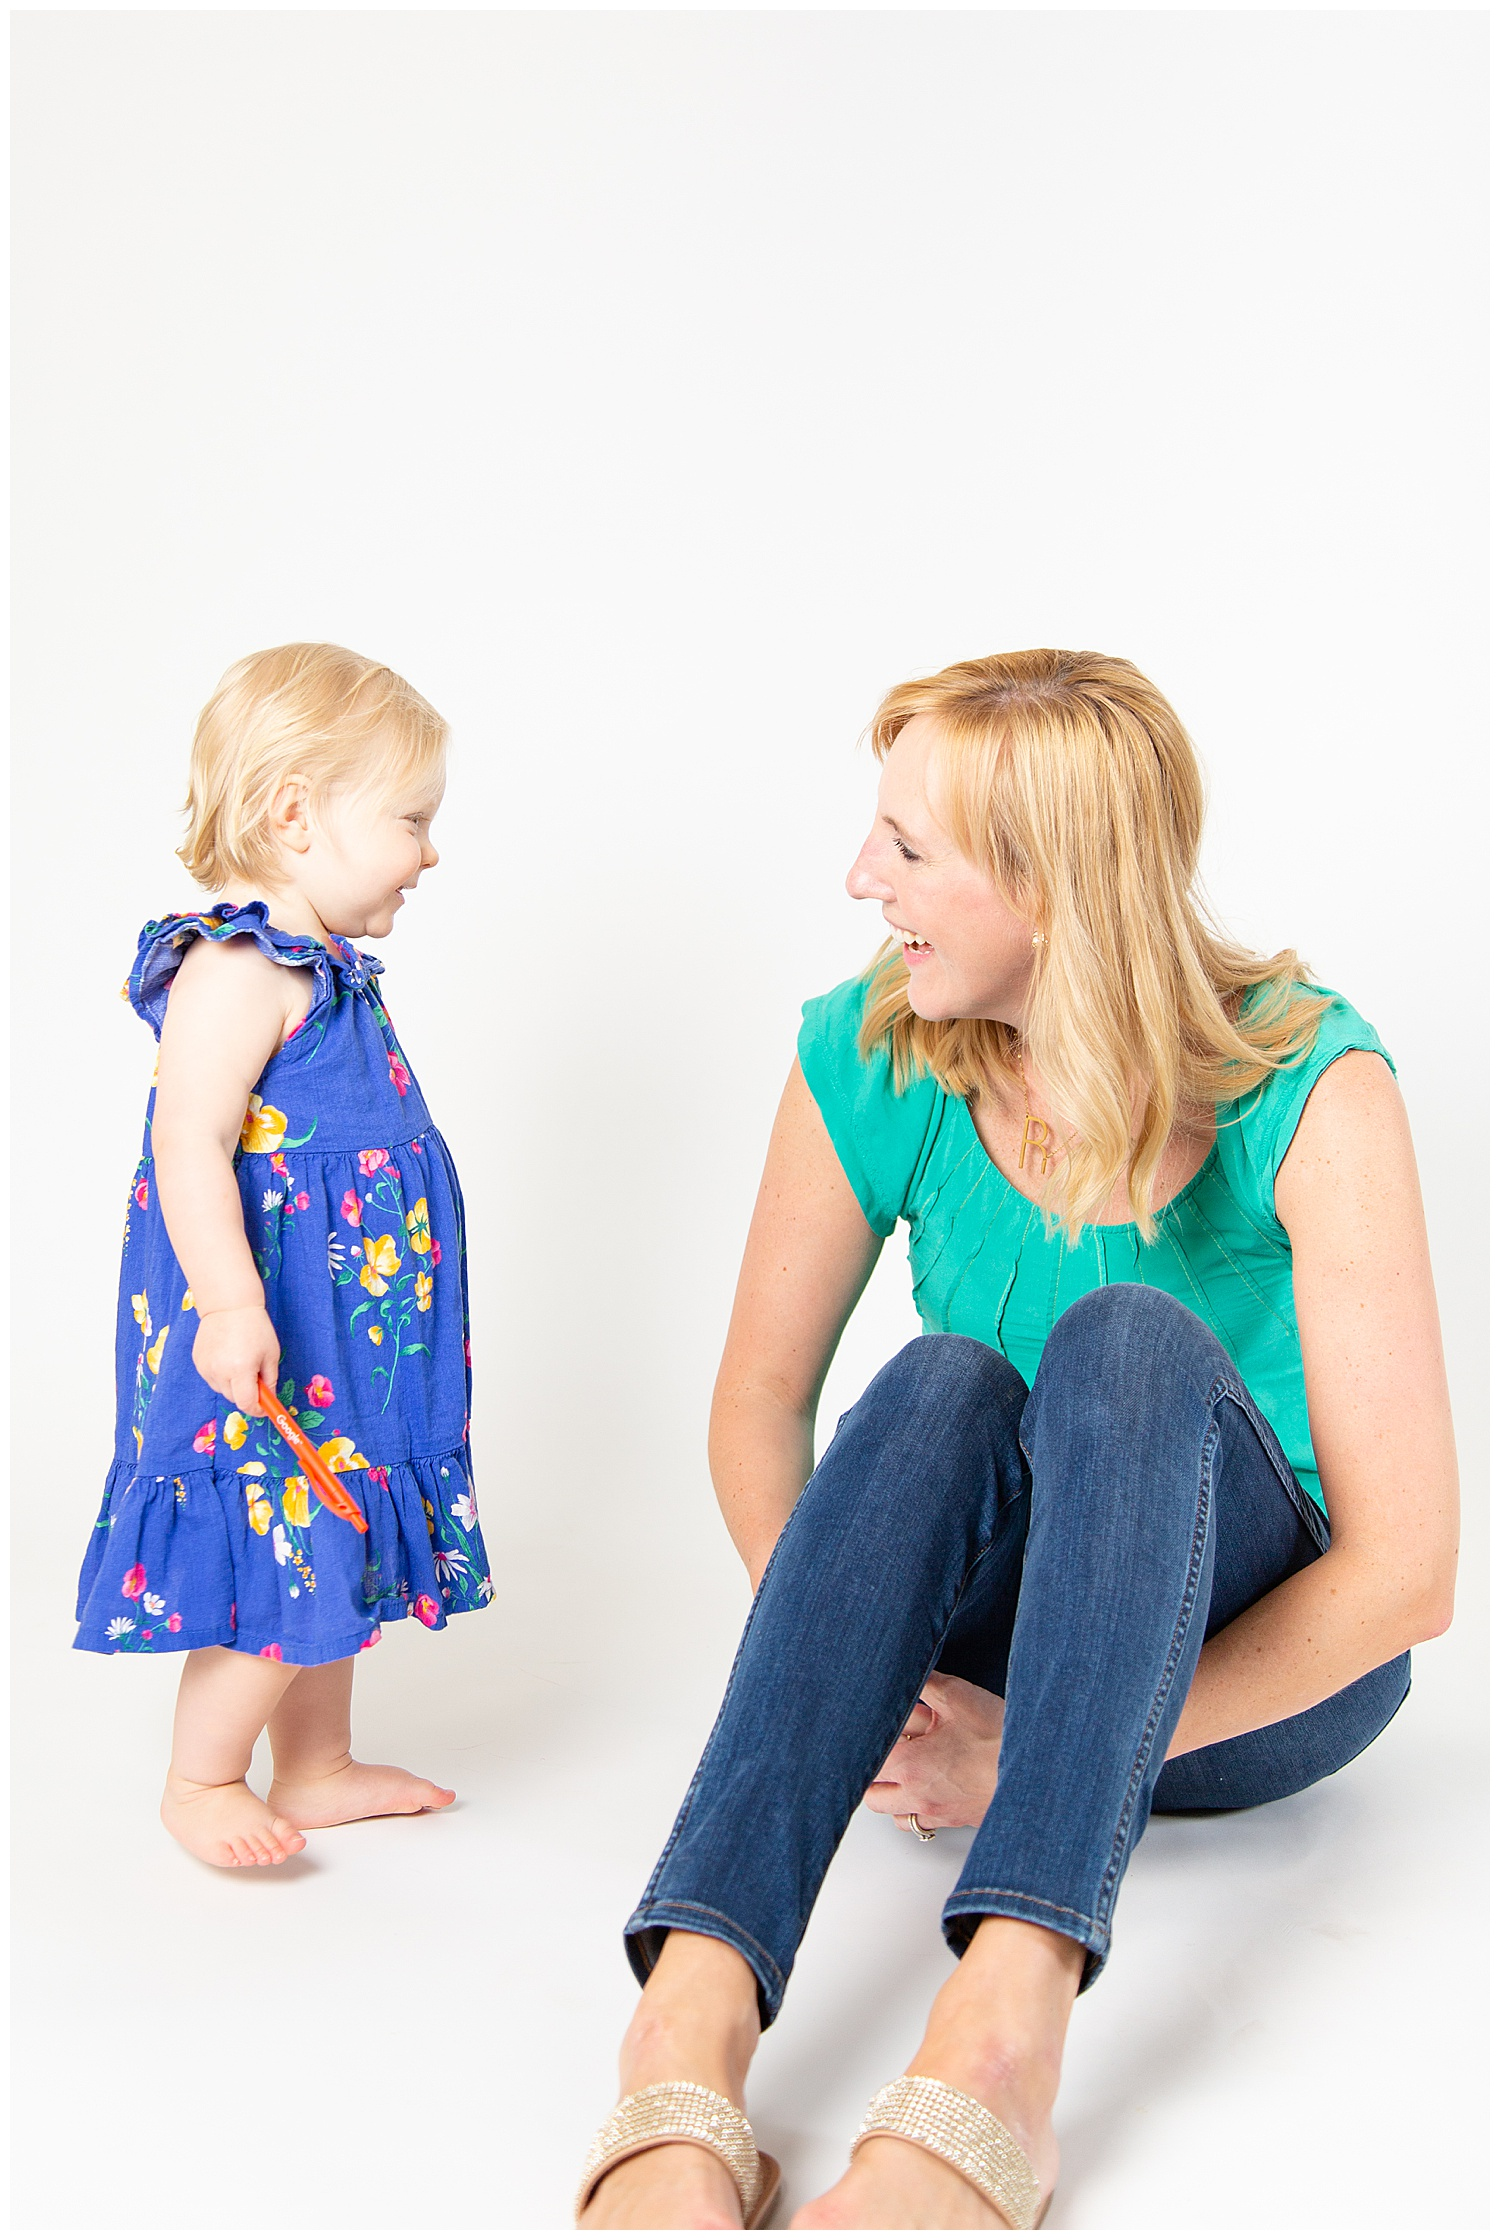 emily-belson-photography-family-session-09.jpg